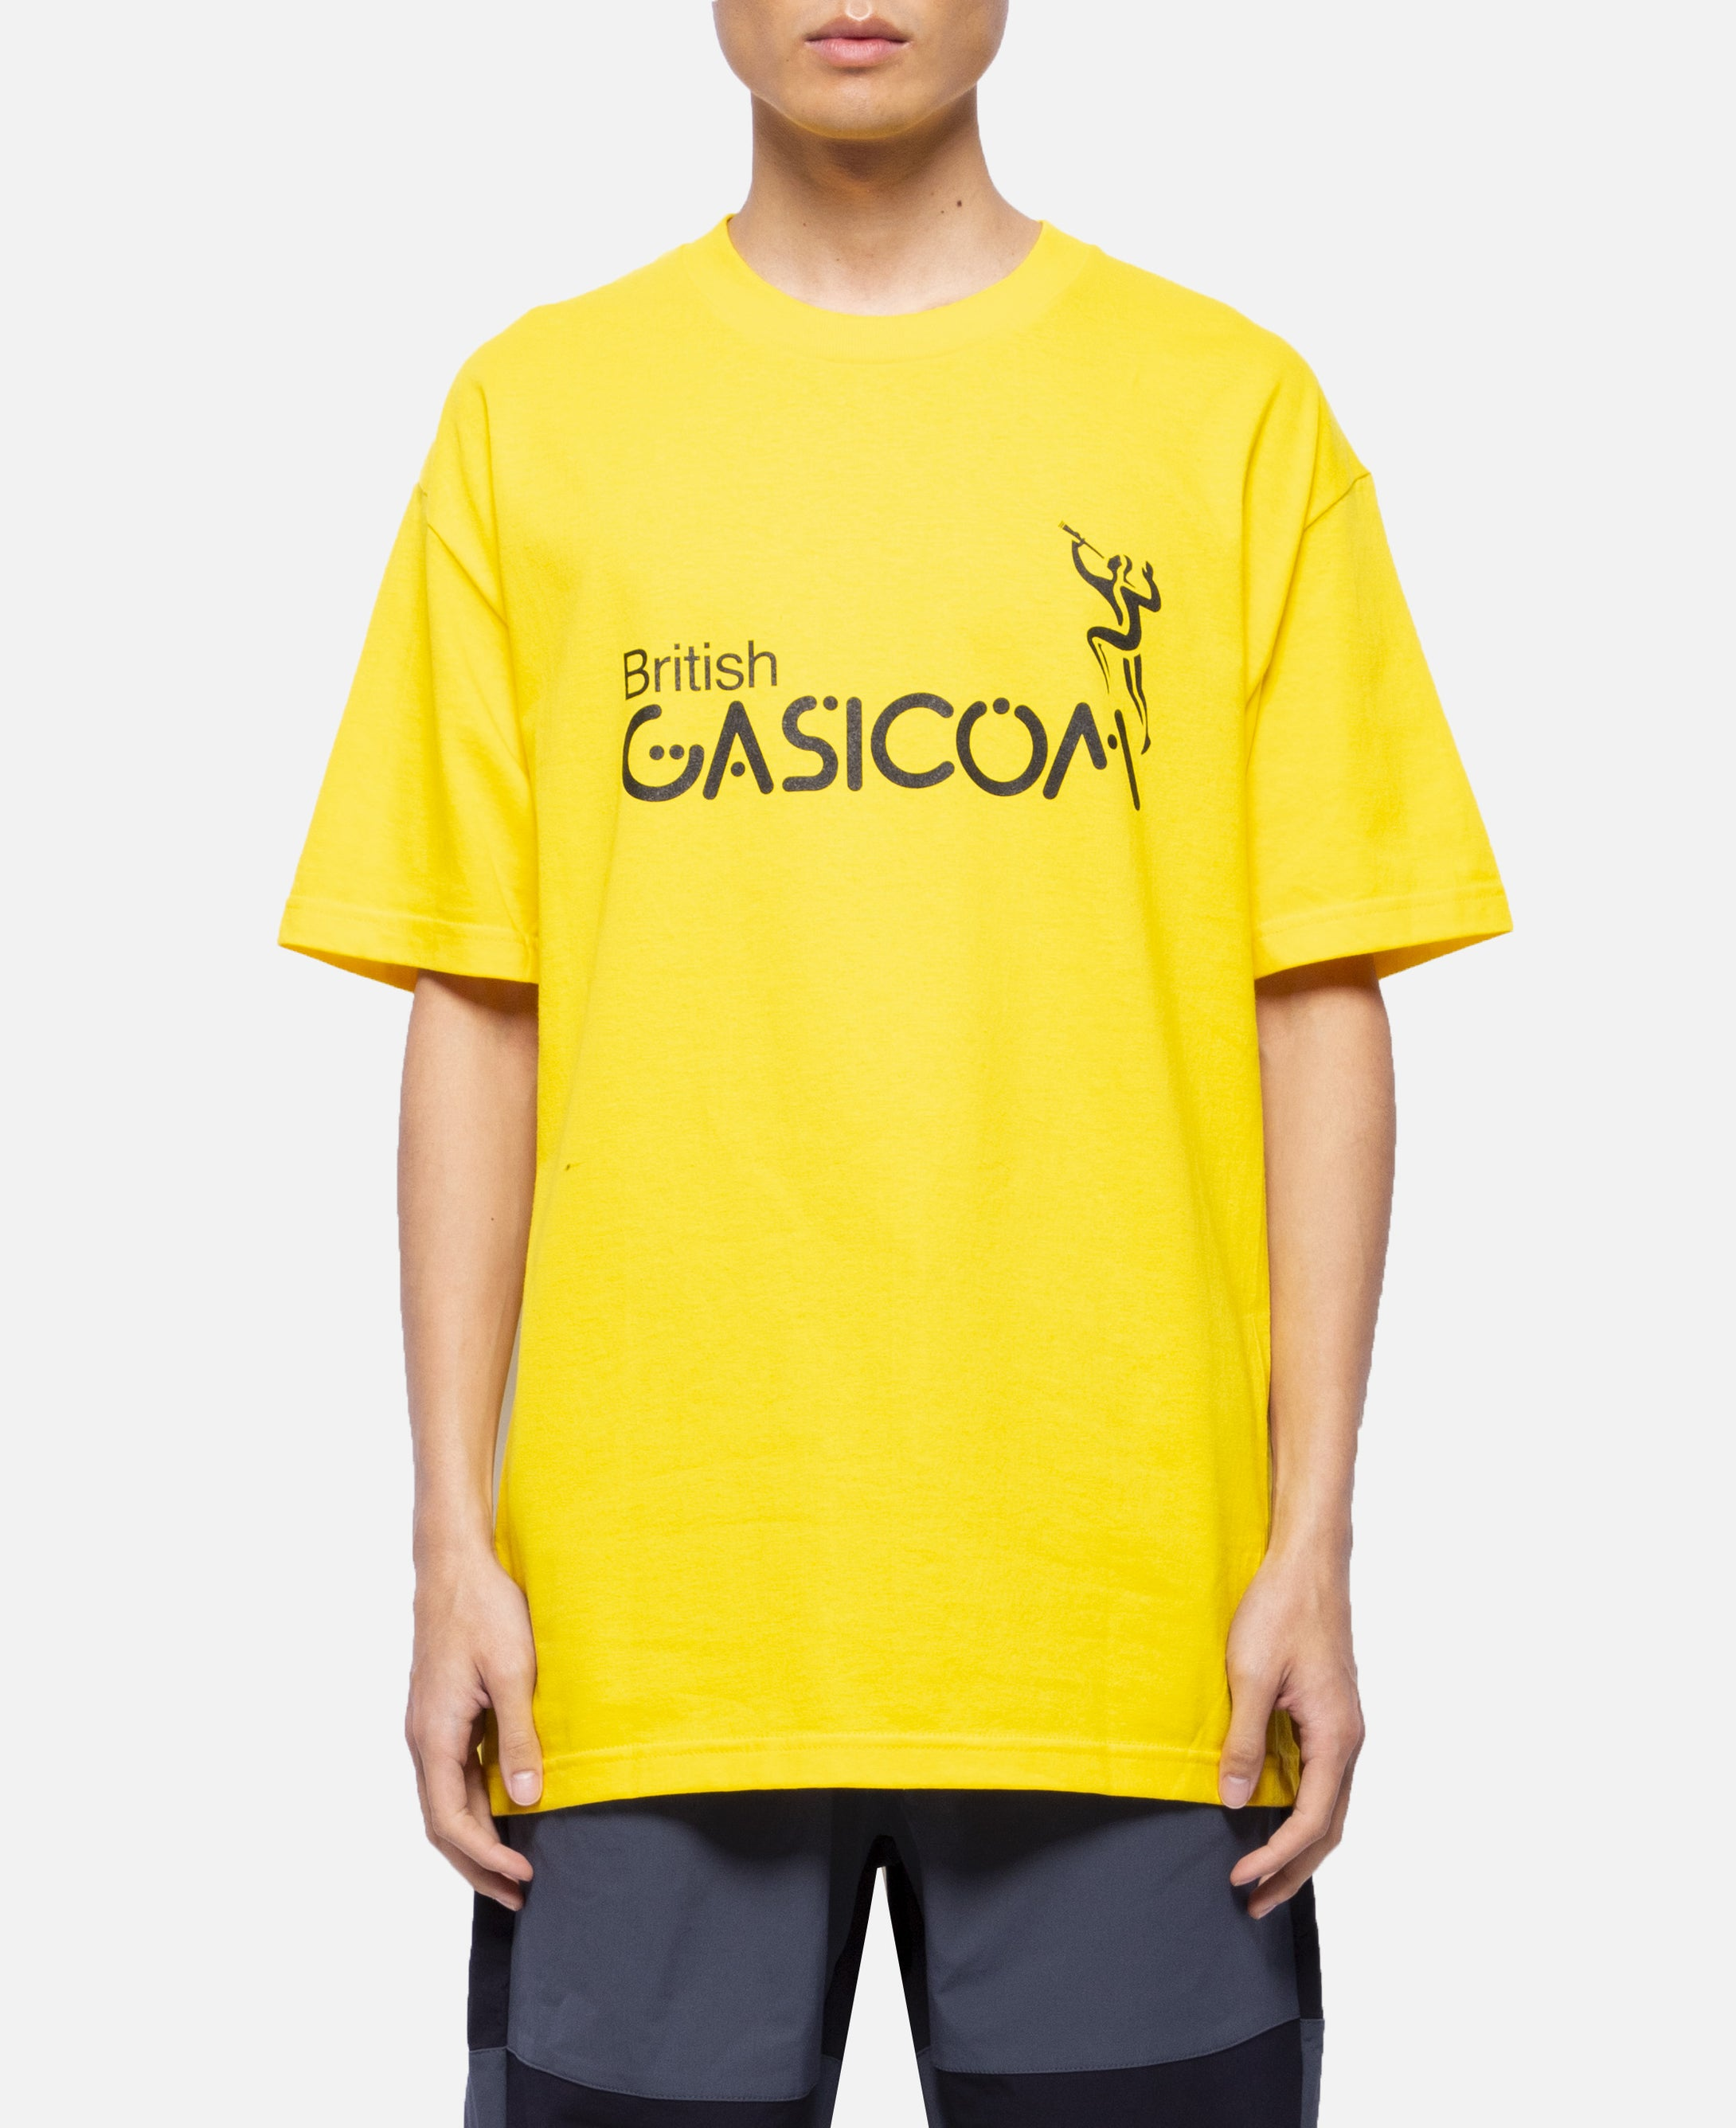 British Gasicom T-Shirt